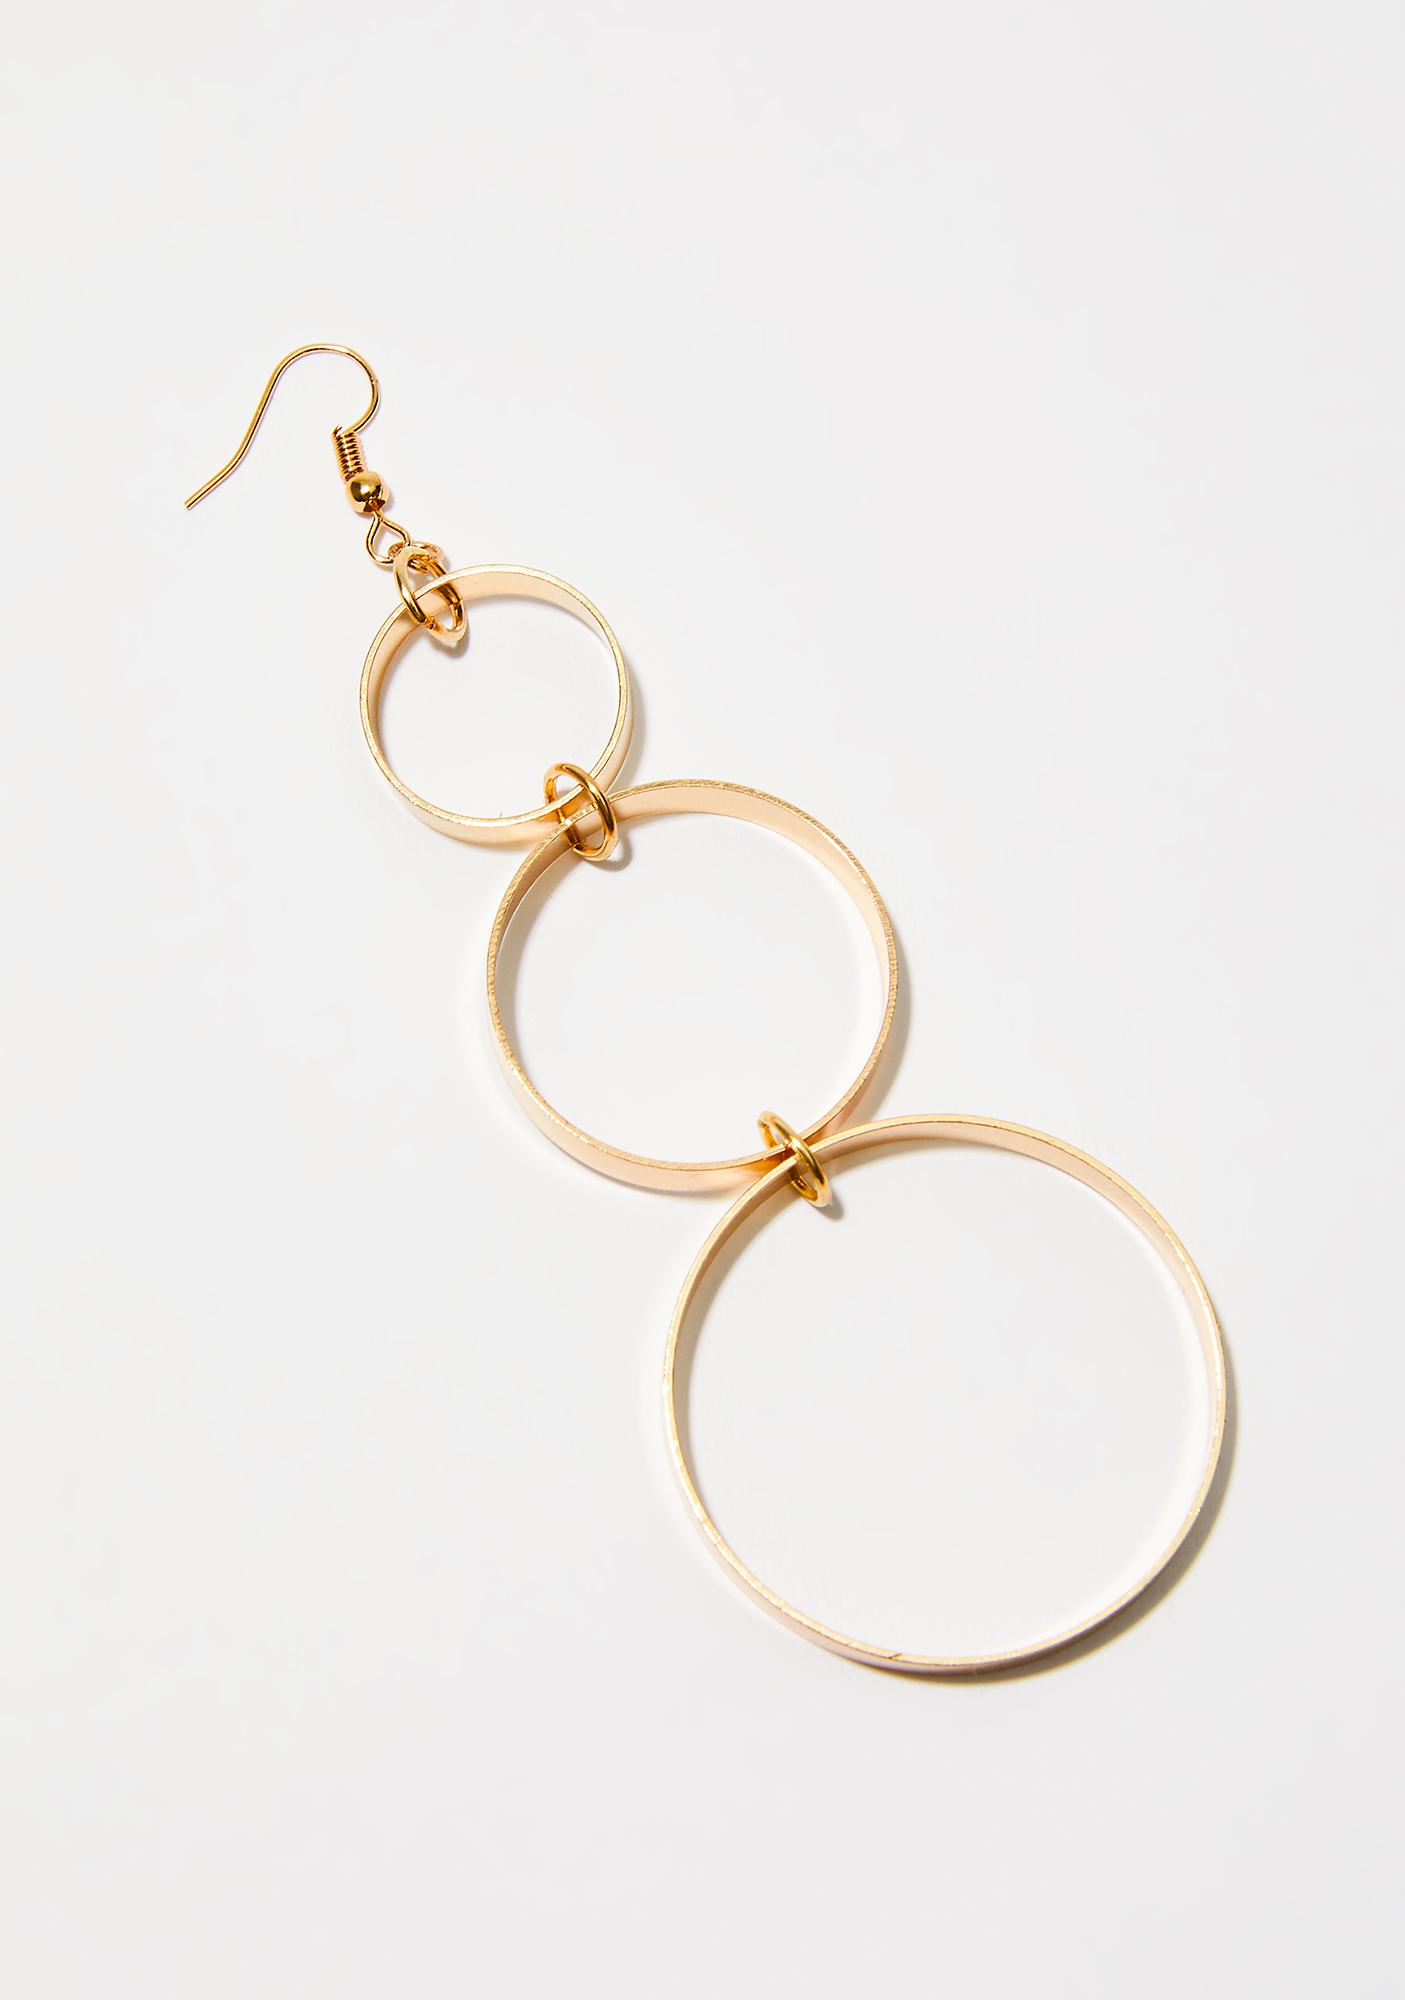 We Linked Up Circle Earrings